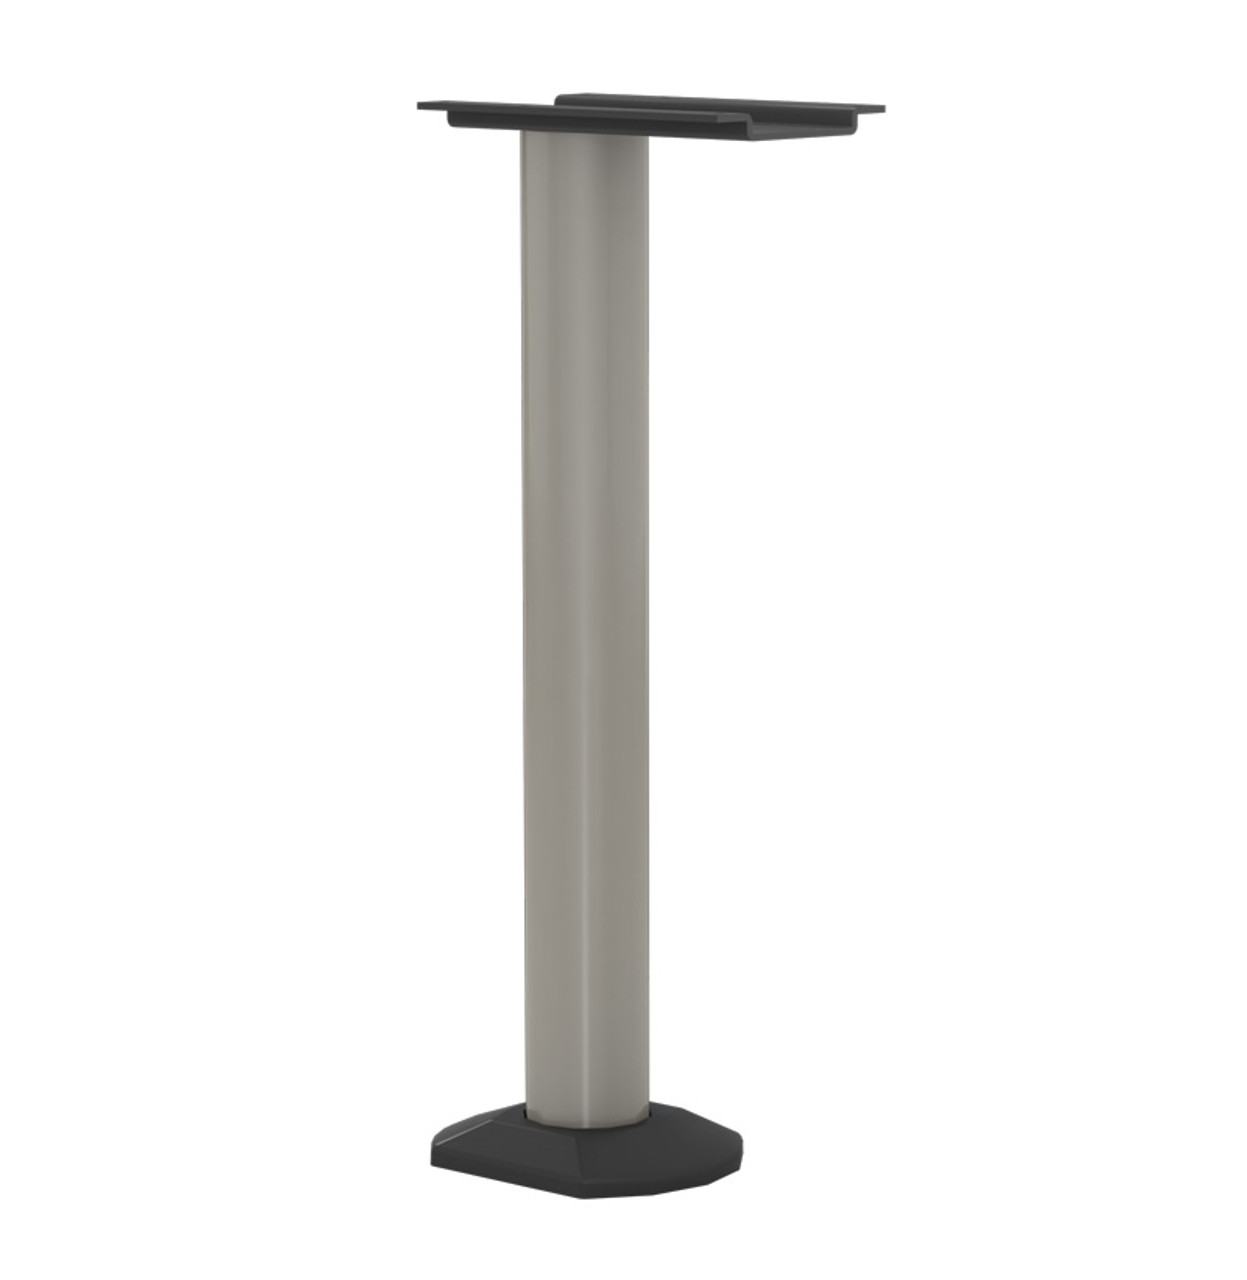 """Surface Mounted Table Base, 27-3/4"""" Height, 3"""" diameter Column, with Floor Plate - Replacementtablelegs.com"""